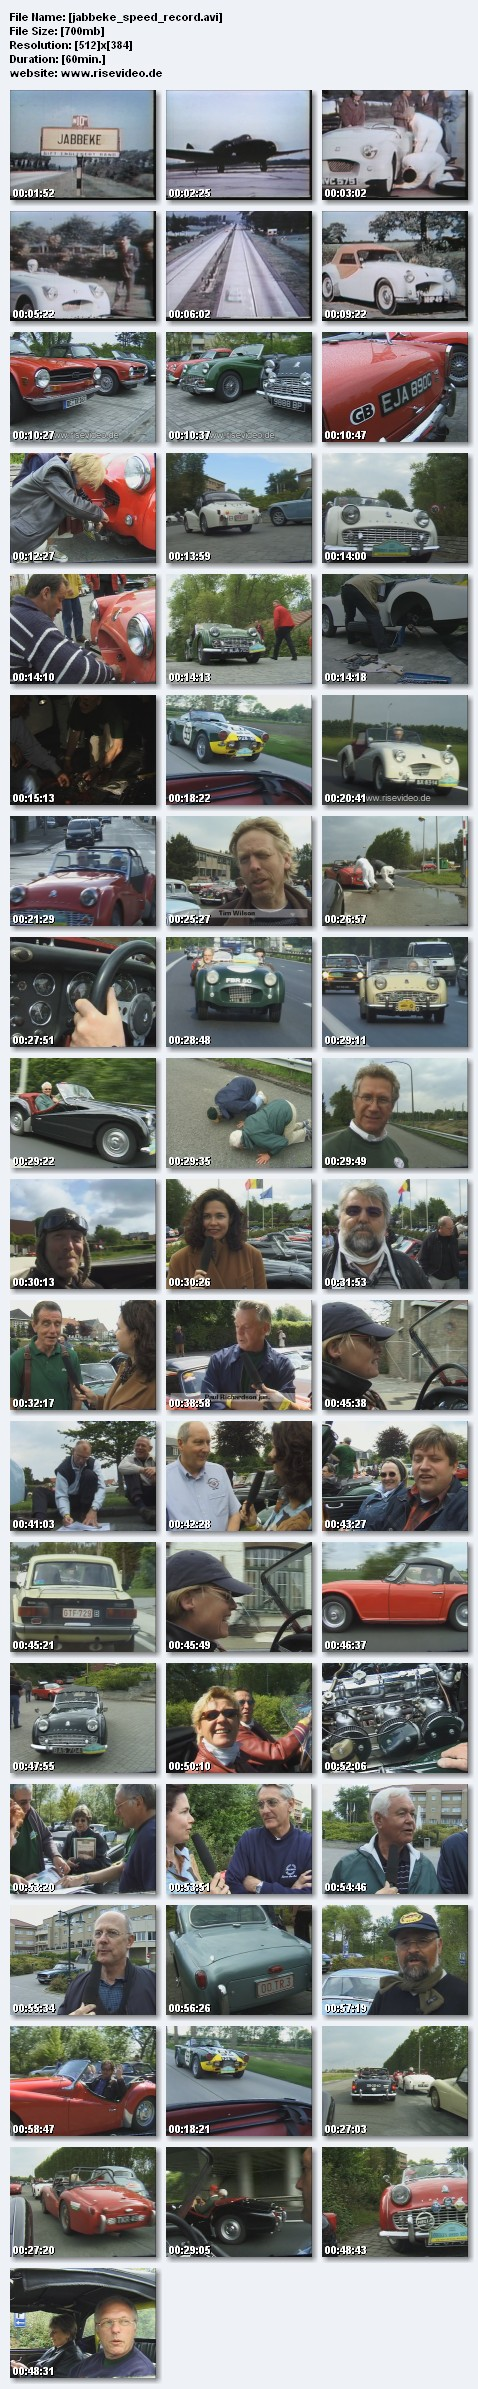 Classic car speed record in jabbeke belgium   triumph tr olditmers preview 0